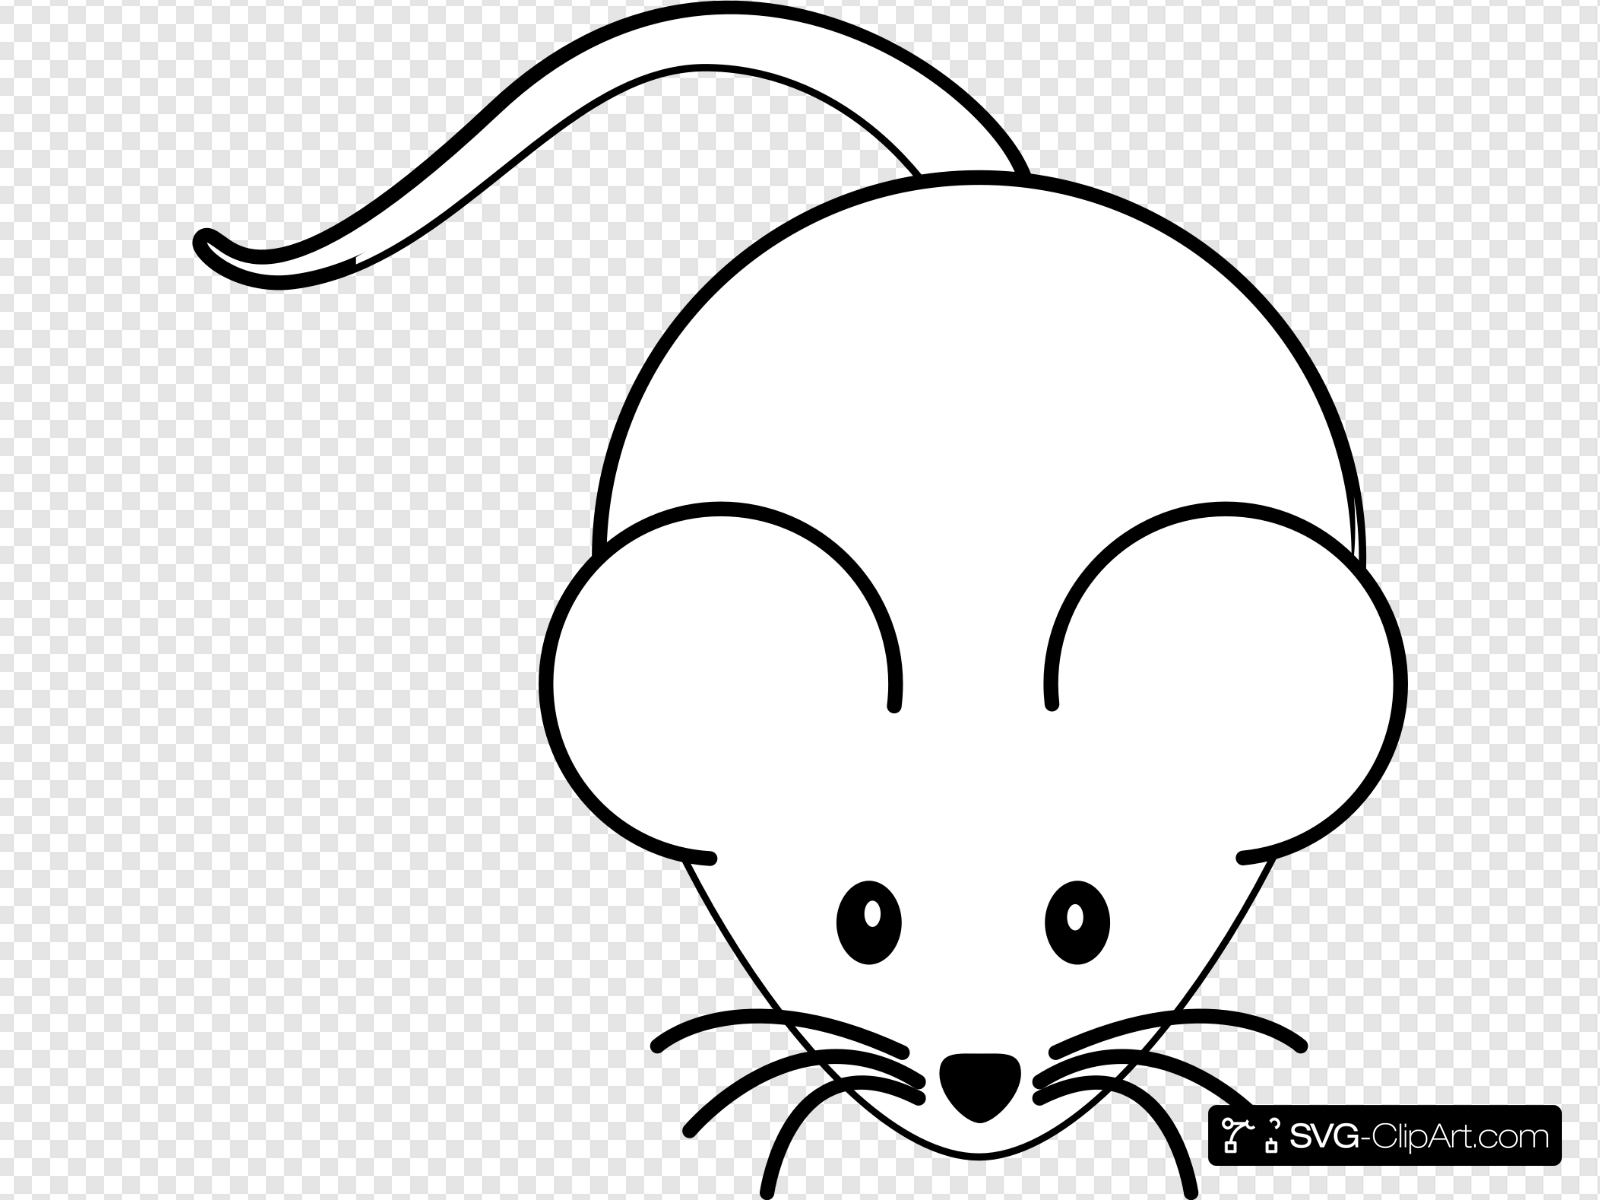 Black And White Mouse Clip art, Icon and SVG.